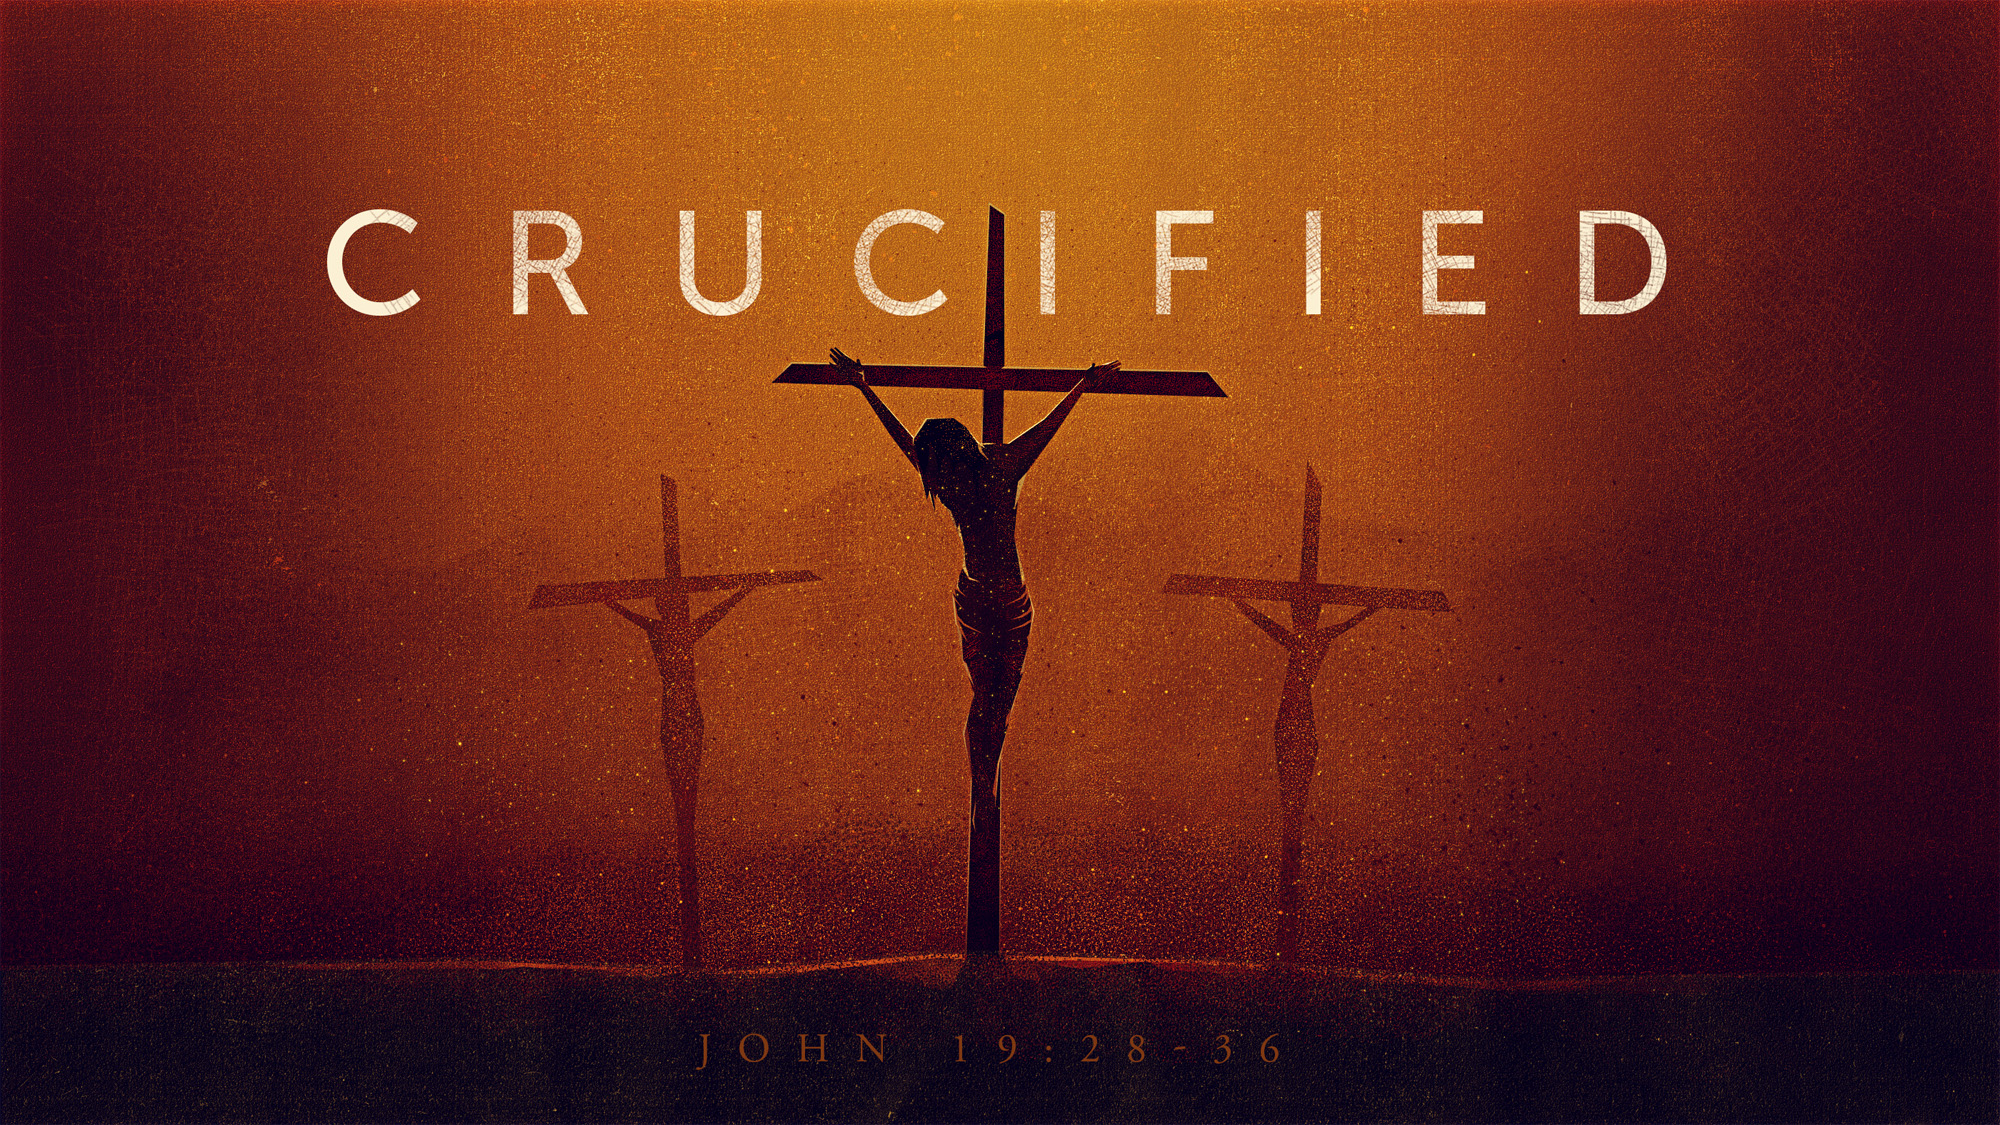 crucified walter bright